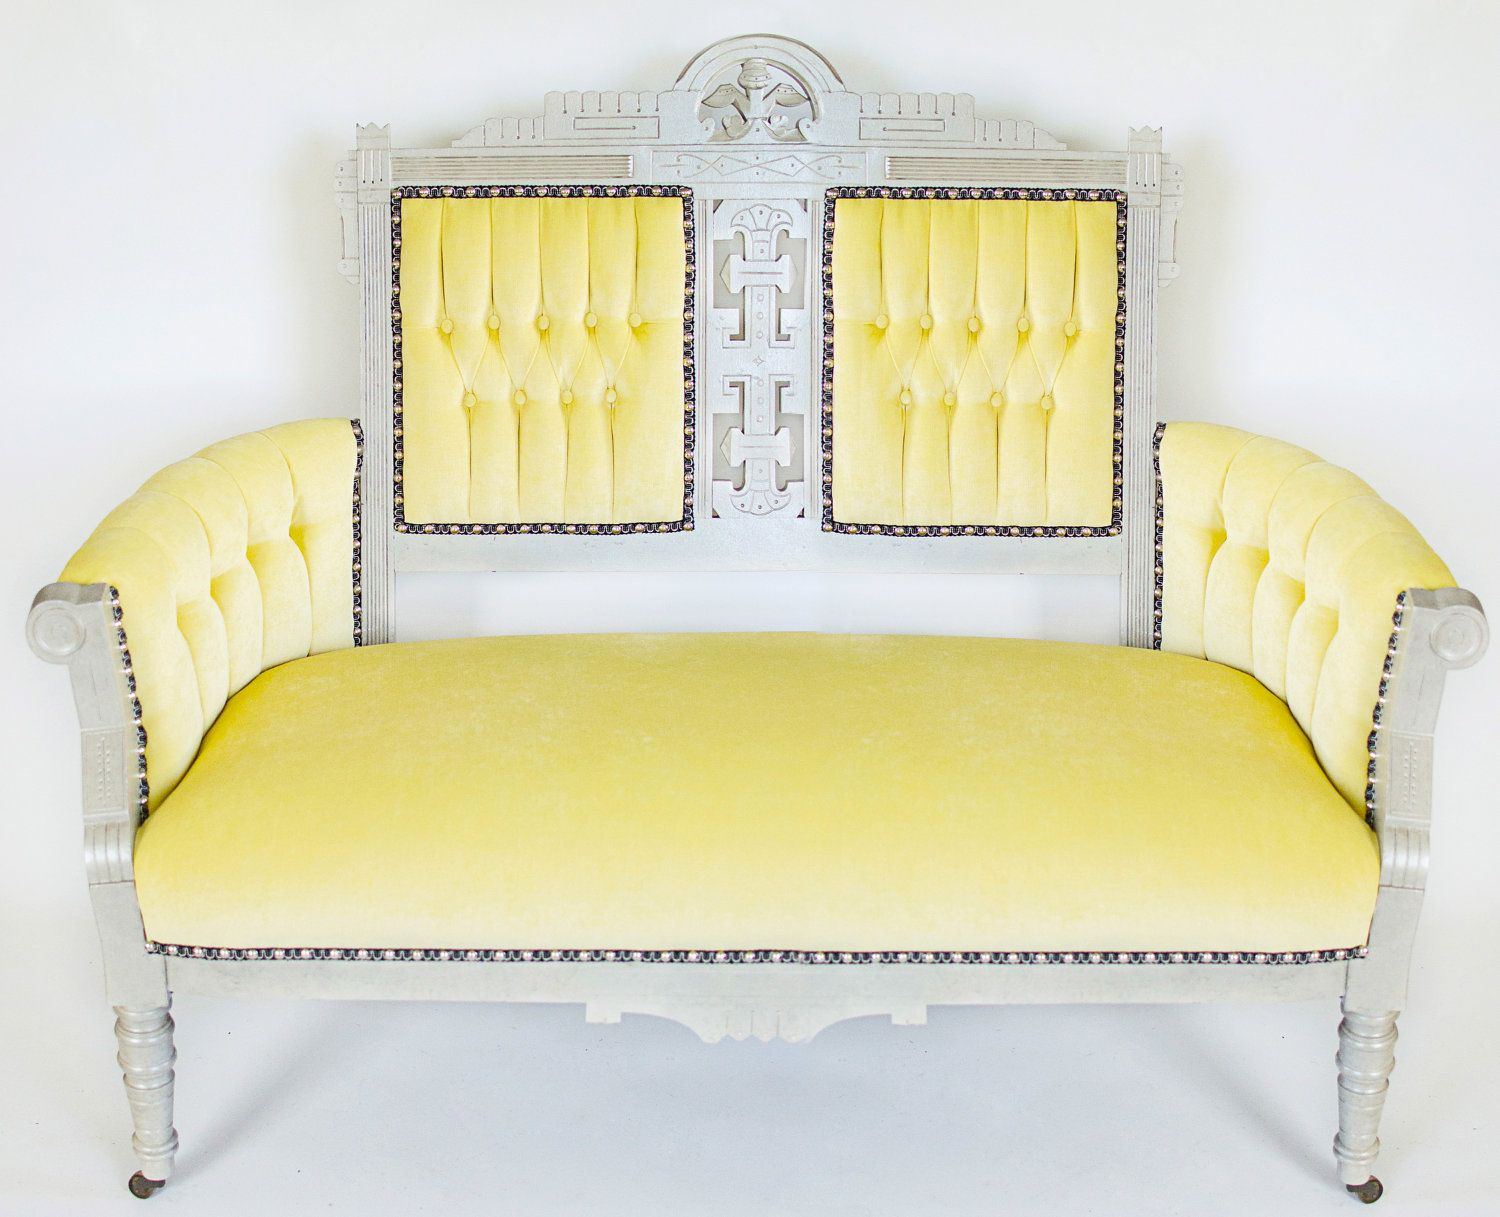 tufted yellow chair zero gravity lounge chairs upholstered furniture